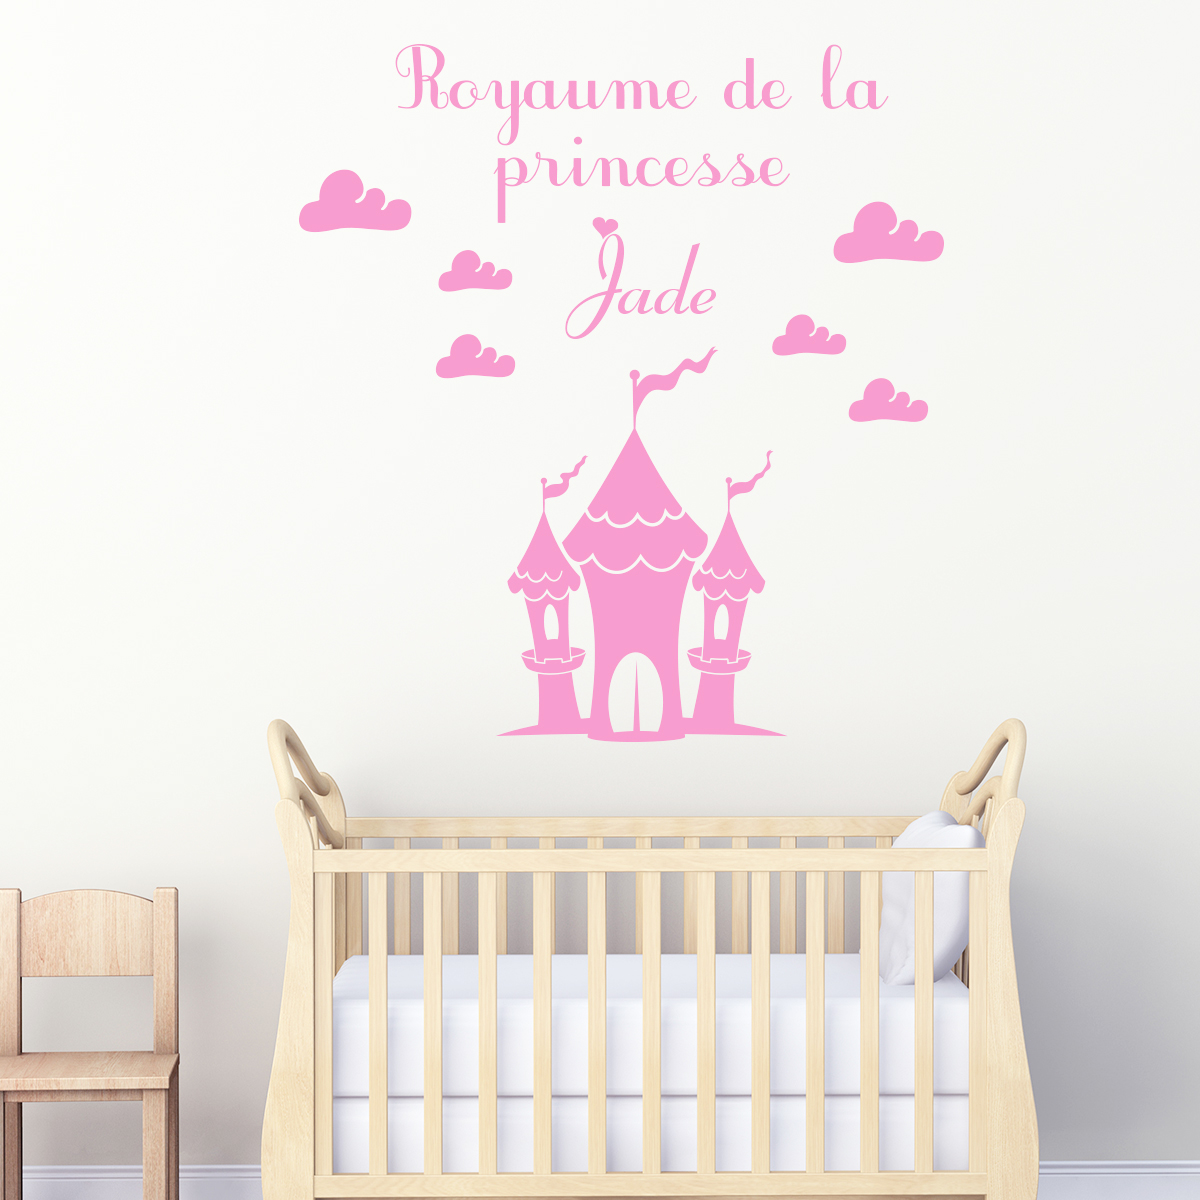 sticker pr nom personnalis royaume de la princesse mini stickers pr nom perso ambiance sticker. Black Bedroom Furniture Sets. Home Design Ideas